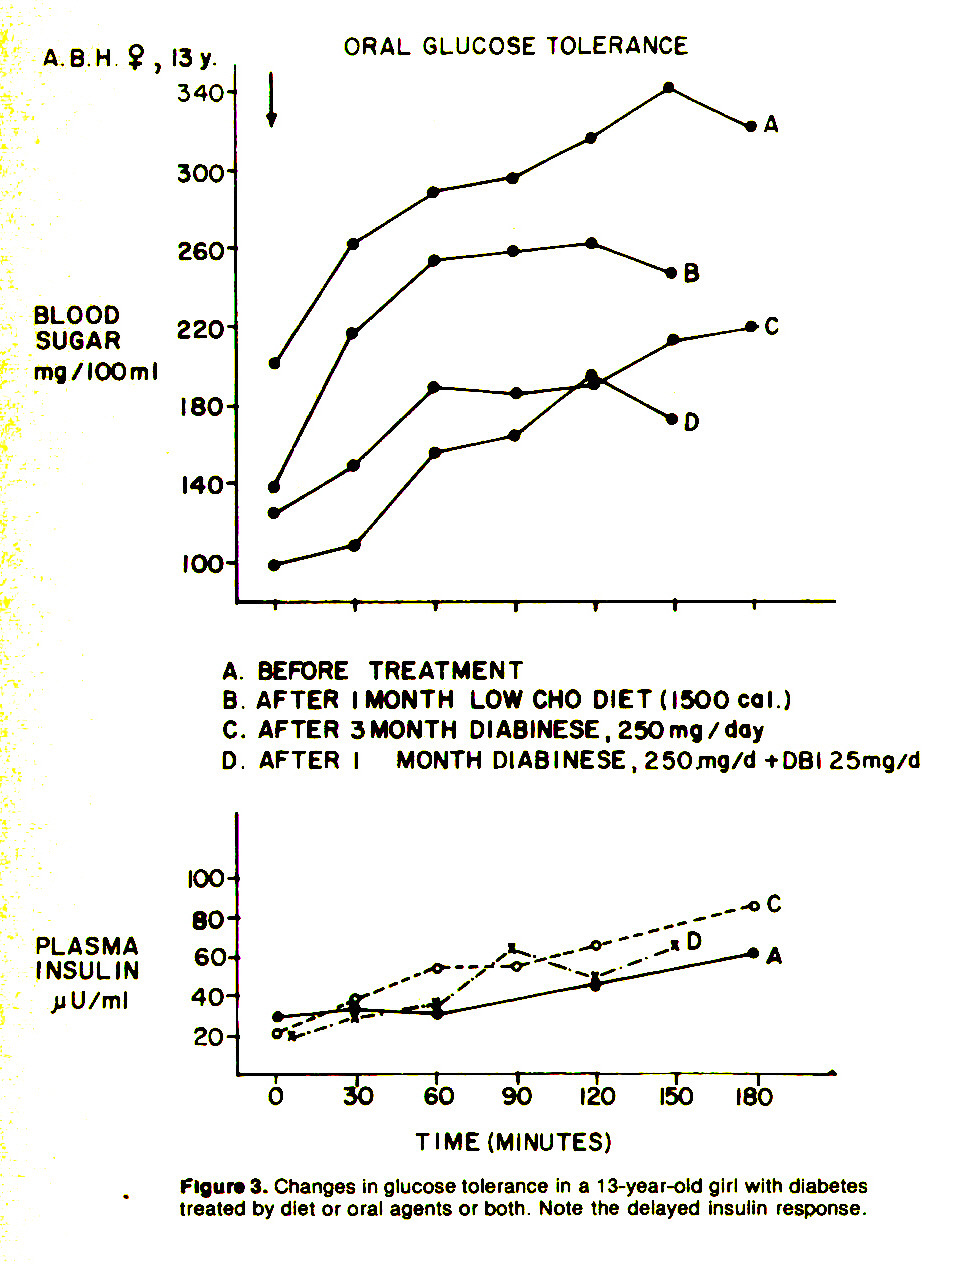 Figure 3. Changes in glucose tolerance in a 13-year-old girl with diabetes treated by diet or oral agents or both. Note the delayed insulin response.